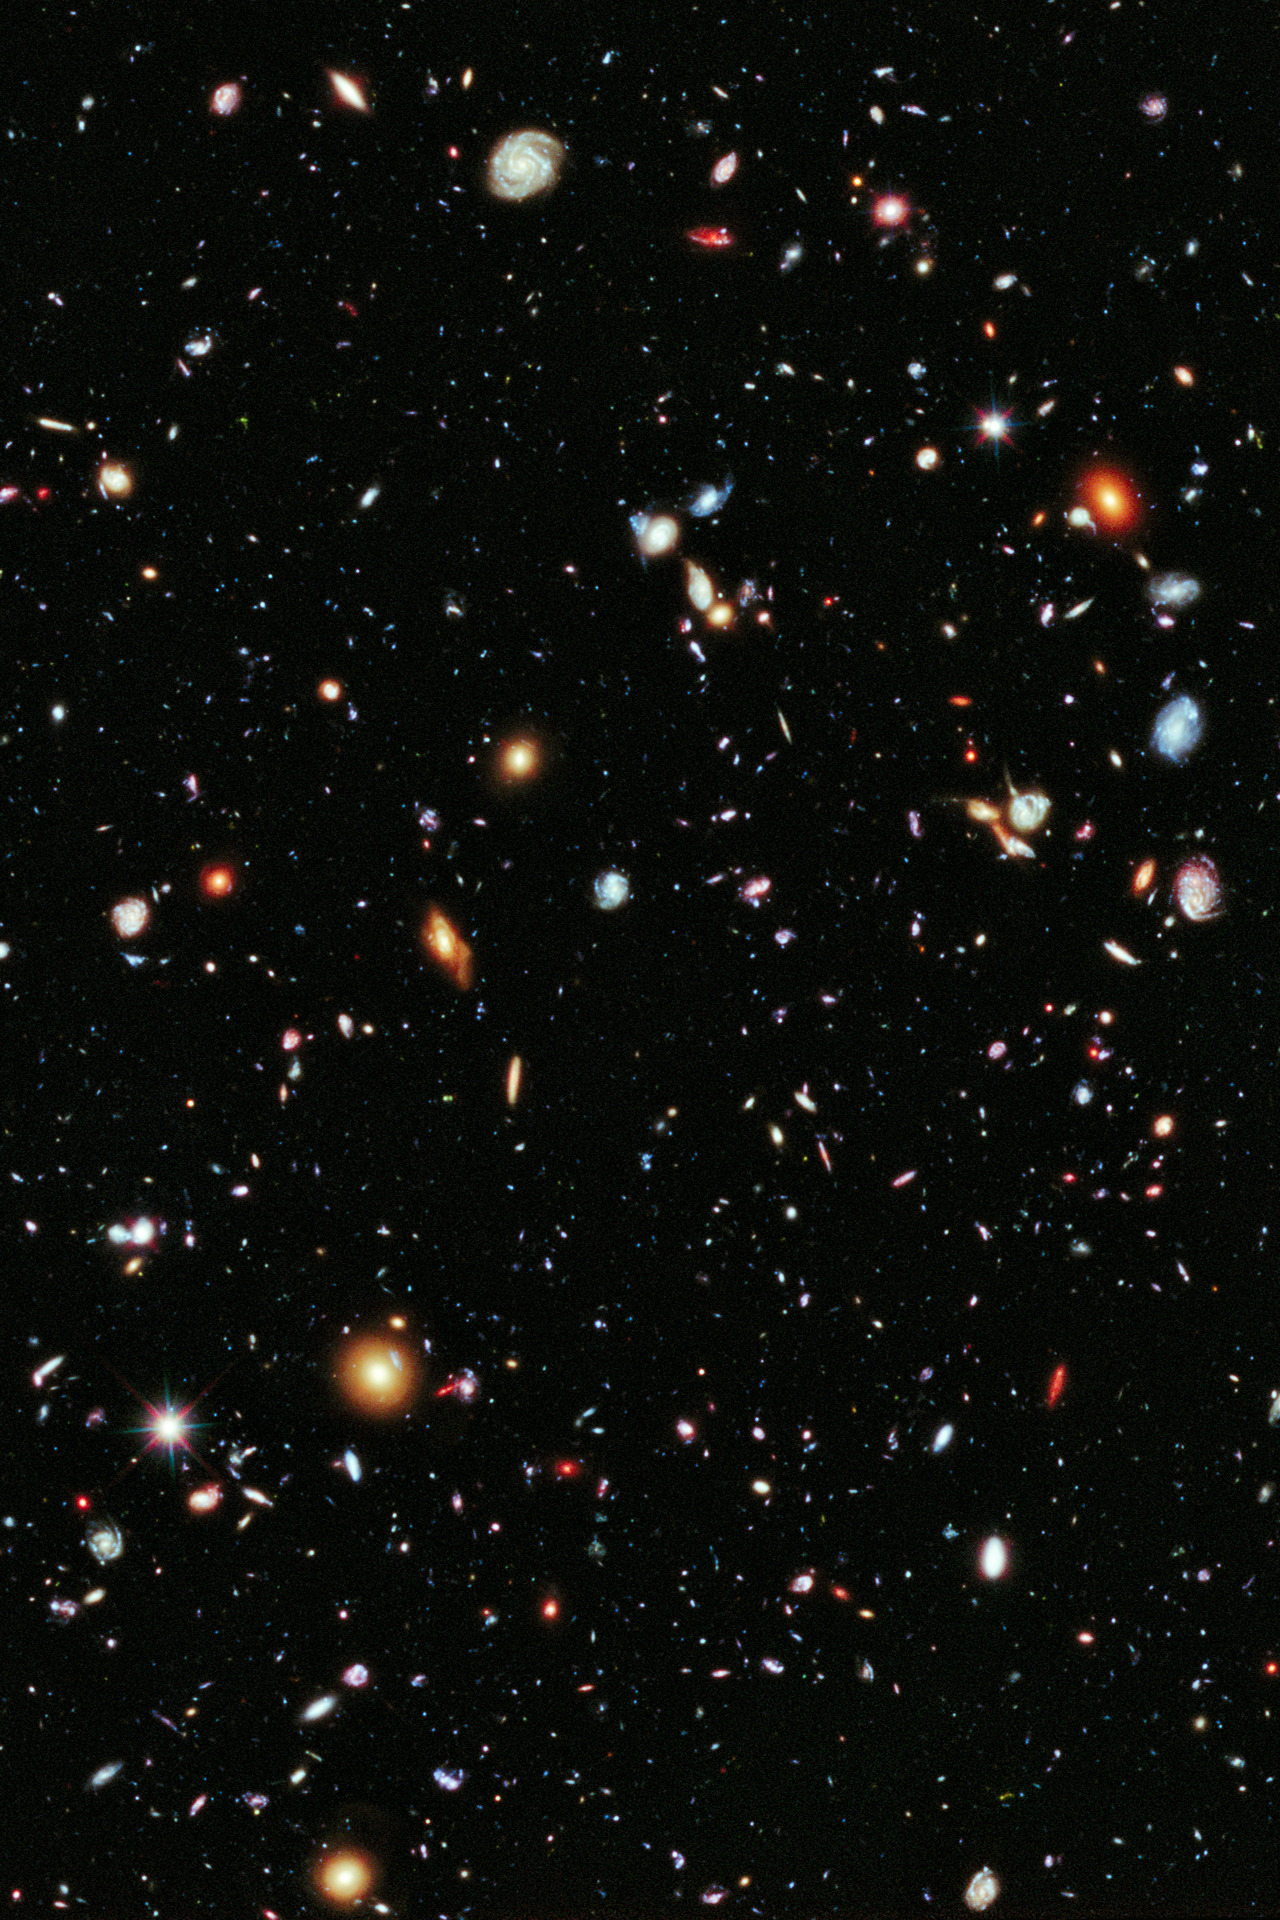 The Hubble Extreme Deep Field The Hubble Extreme Deep Field is most distant image of the Universe ever created.  Its diameter is one tenth the width of the full moon, its area is one 30 millionth of the entire sky.  Within this field of view there are more than 5000 galaxies, 600 trillion stars and 50 quadrillion planets and moons. The light from the most distant visible objects was created more than 13 billion years ago, when the Universe was only 5% of it's current age.  This photograph is a slice of infinity, proof of the immense scale of reality.